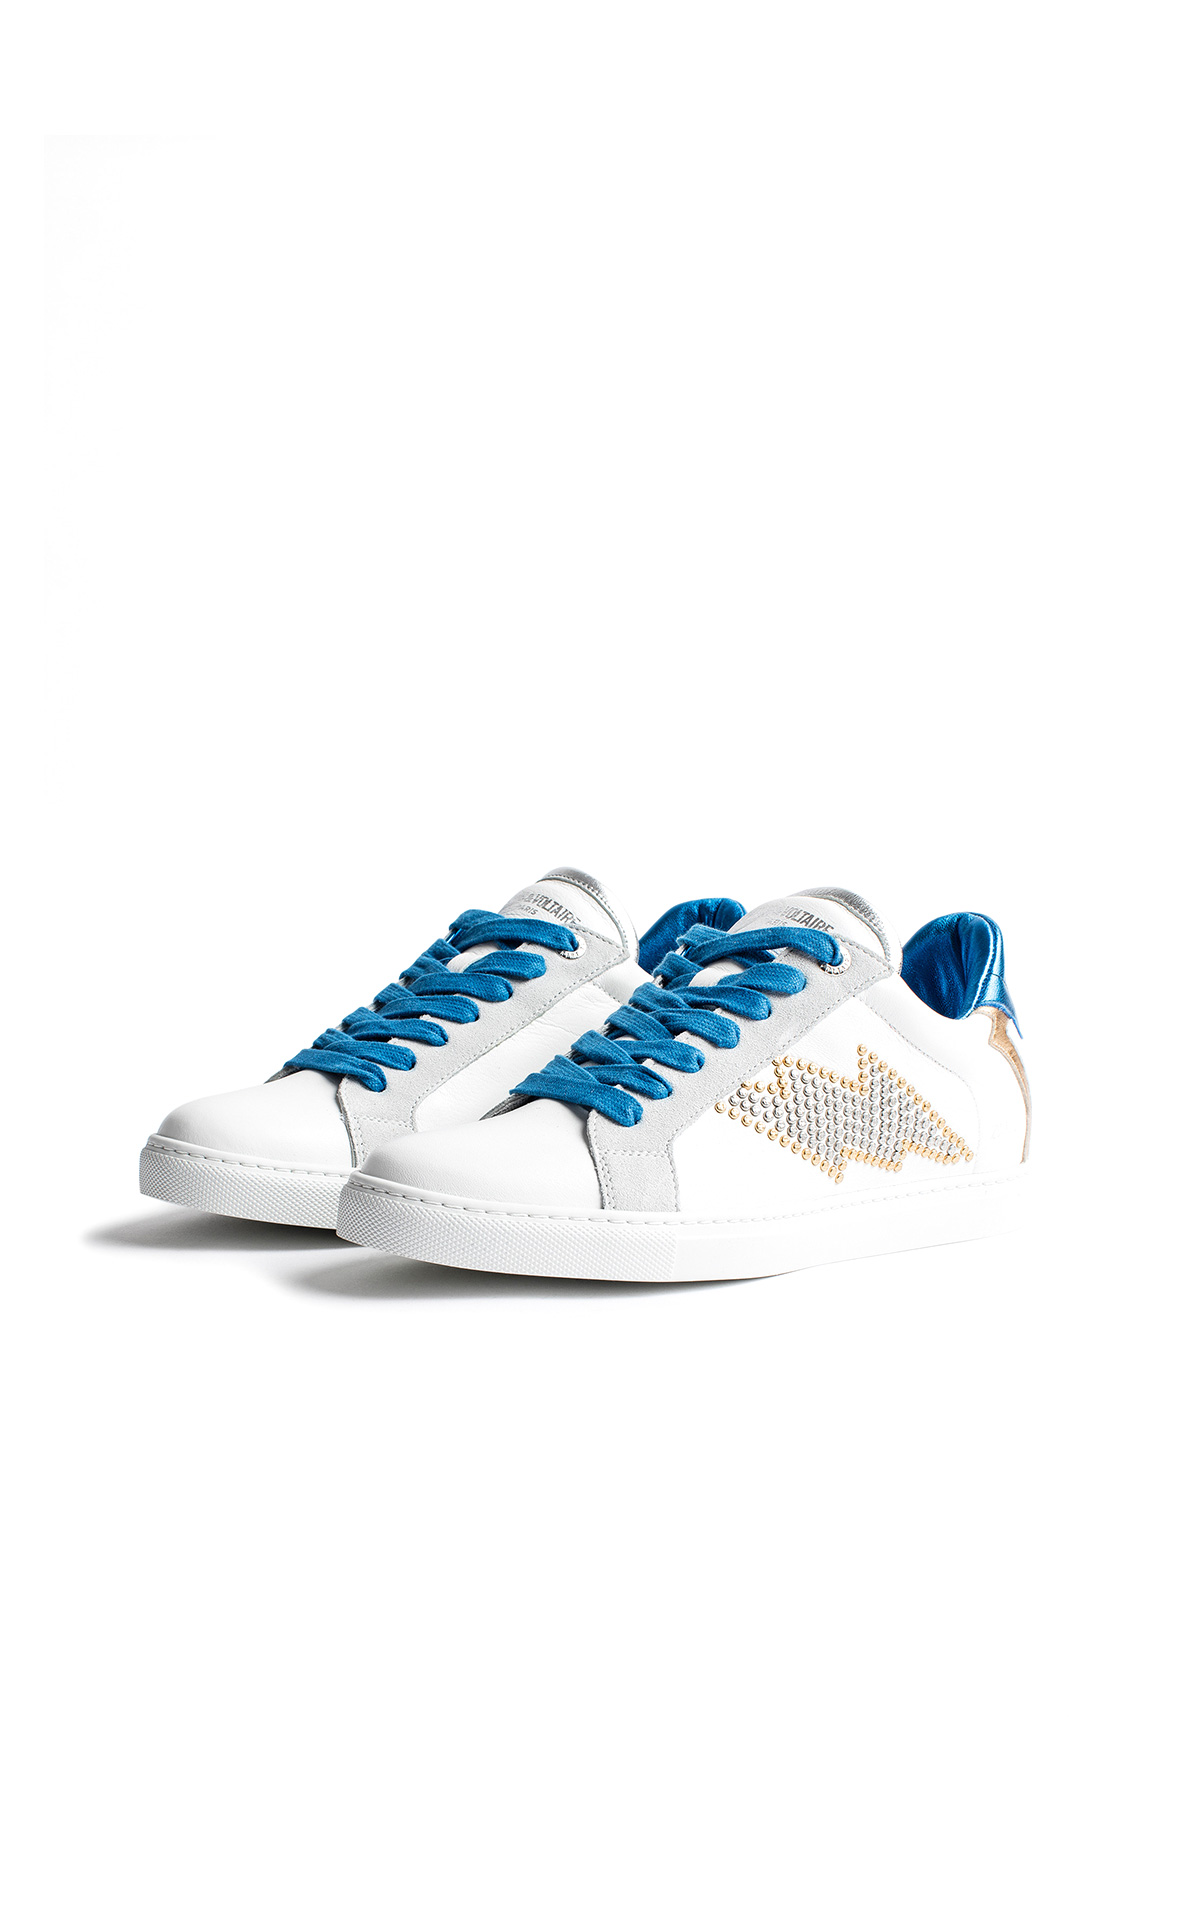 La Vallée Village Zadig & Voltaire Flash studs sneakers